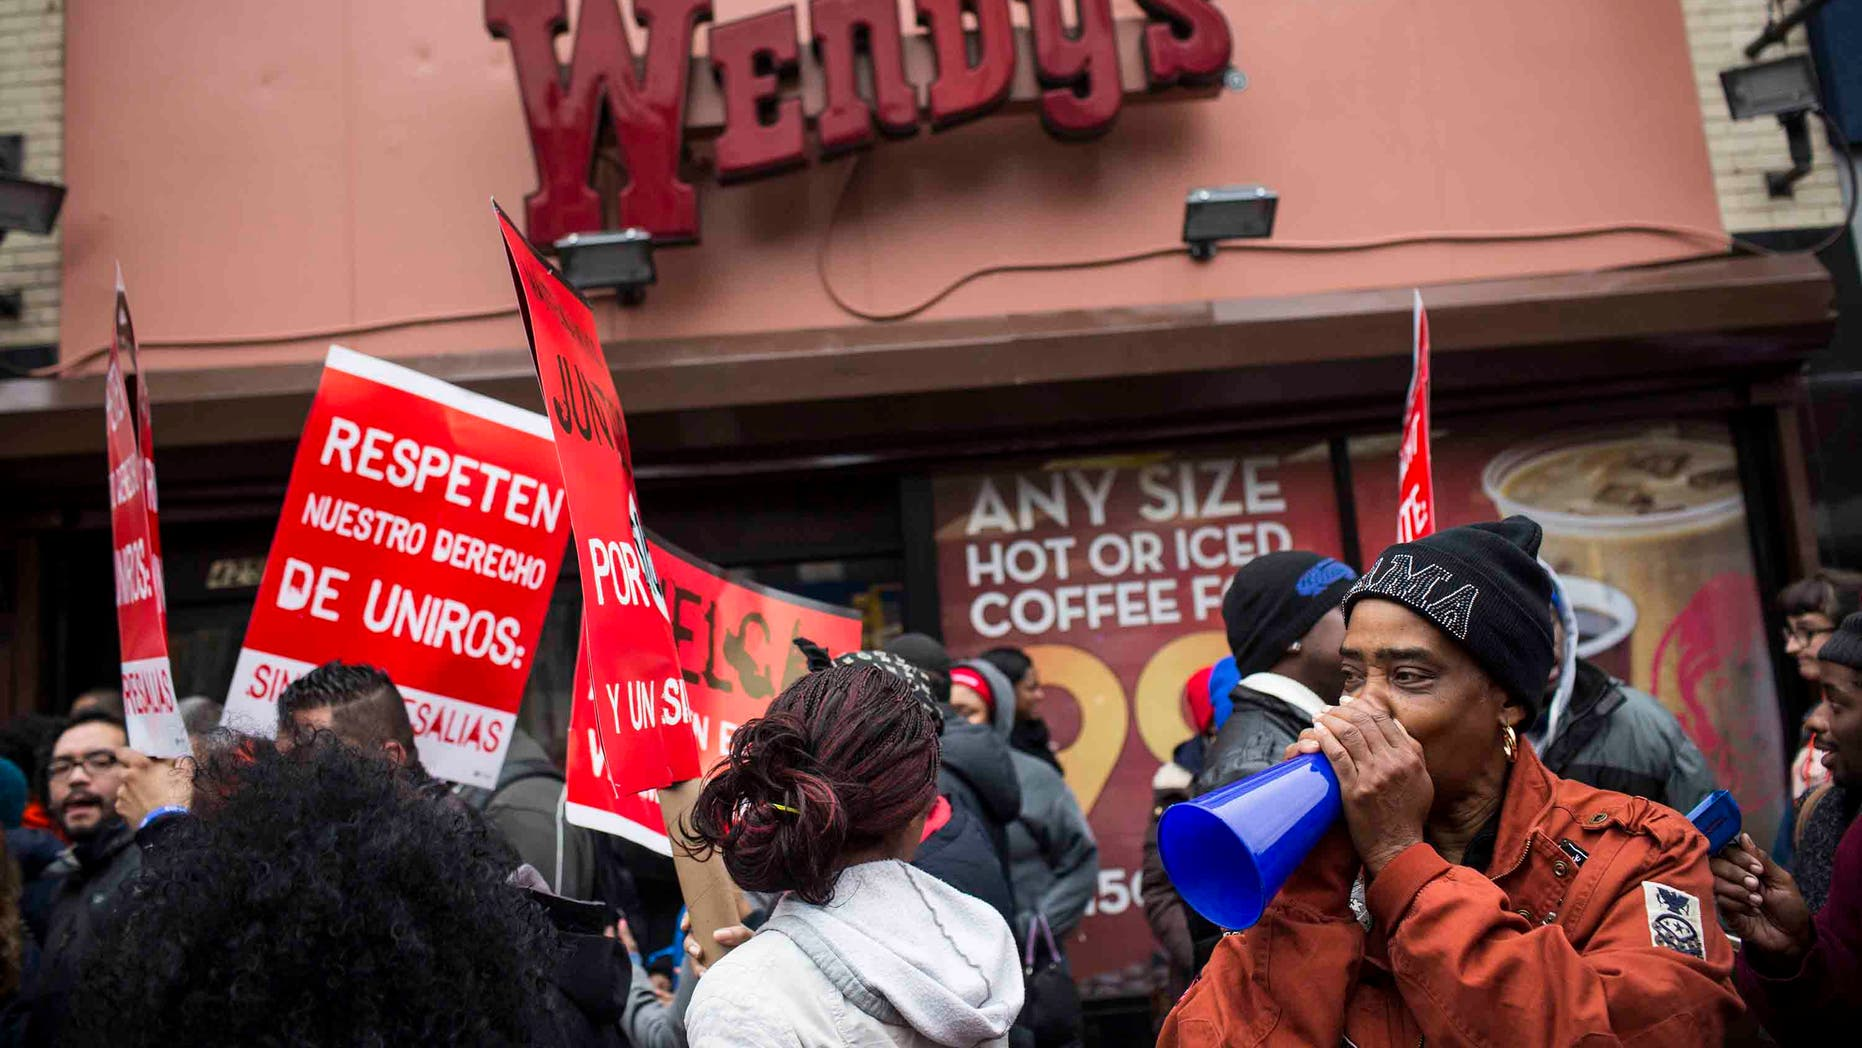 NEW YORK, NY - DECEMBER 05:  Protesters rally outside of a Wendy's in support of raising fast food wages from $7.25 per hour to $15.00 per hour on December 5, 2013 in the Brooklyn borough of New York City. A growing number of fast food workers in the United States have been staging protests outside restaurants, calling for a raise in wages, claiming it is impossible to live resonably while earning minimum wage.  (Photo by Andrew Burton/Getty Images)